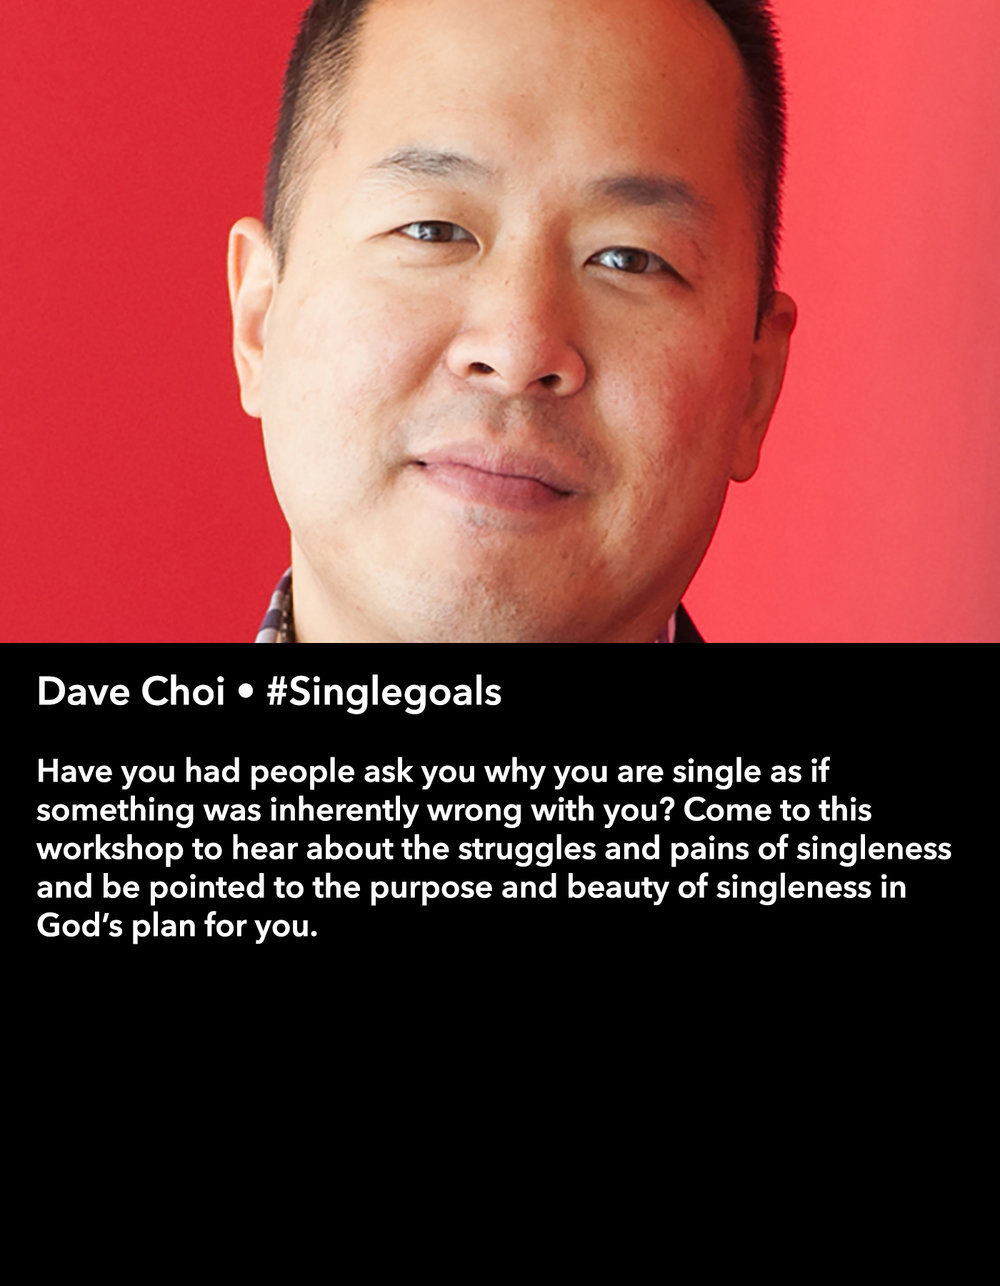 Dave Choi • #Singlegoals • Friday Night, March 17 • 8:30 – 9:45 pm